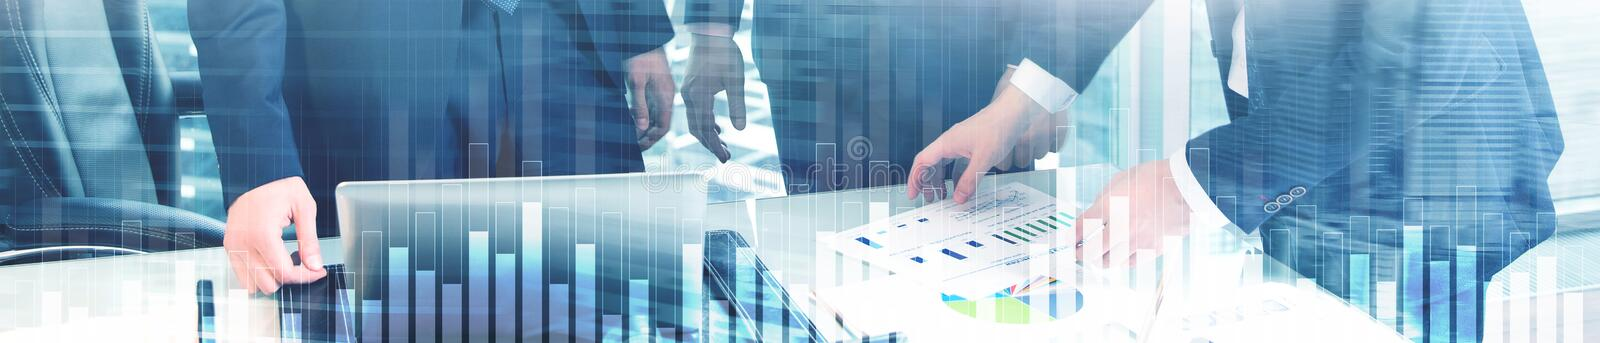 Business and finance graph on blurred background. Trading, investment and economics concept. Website header banner stock photo